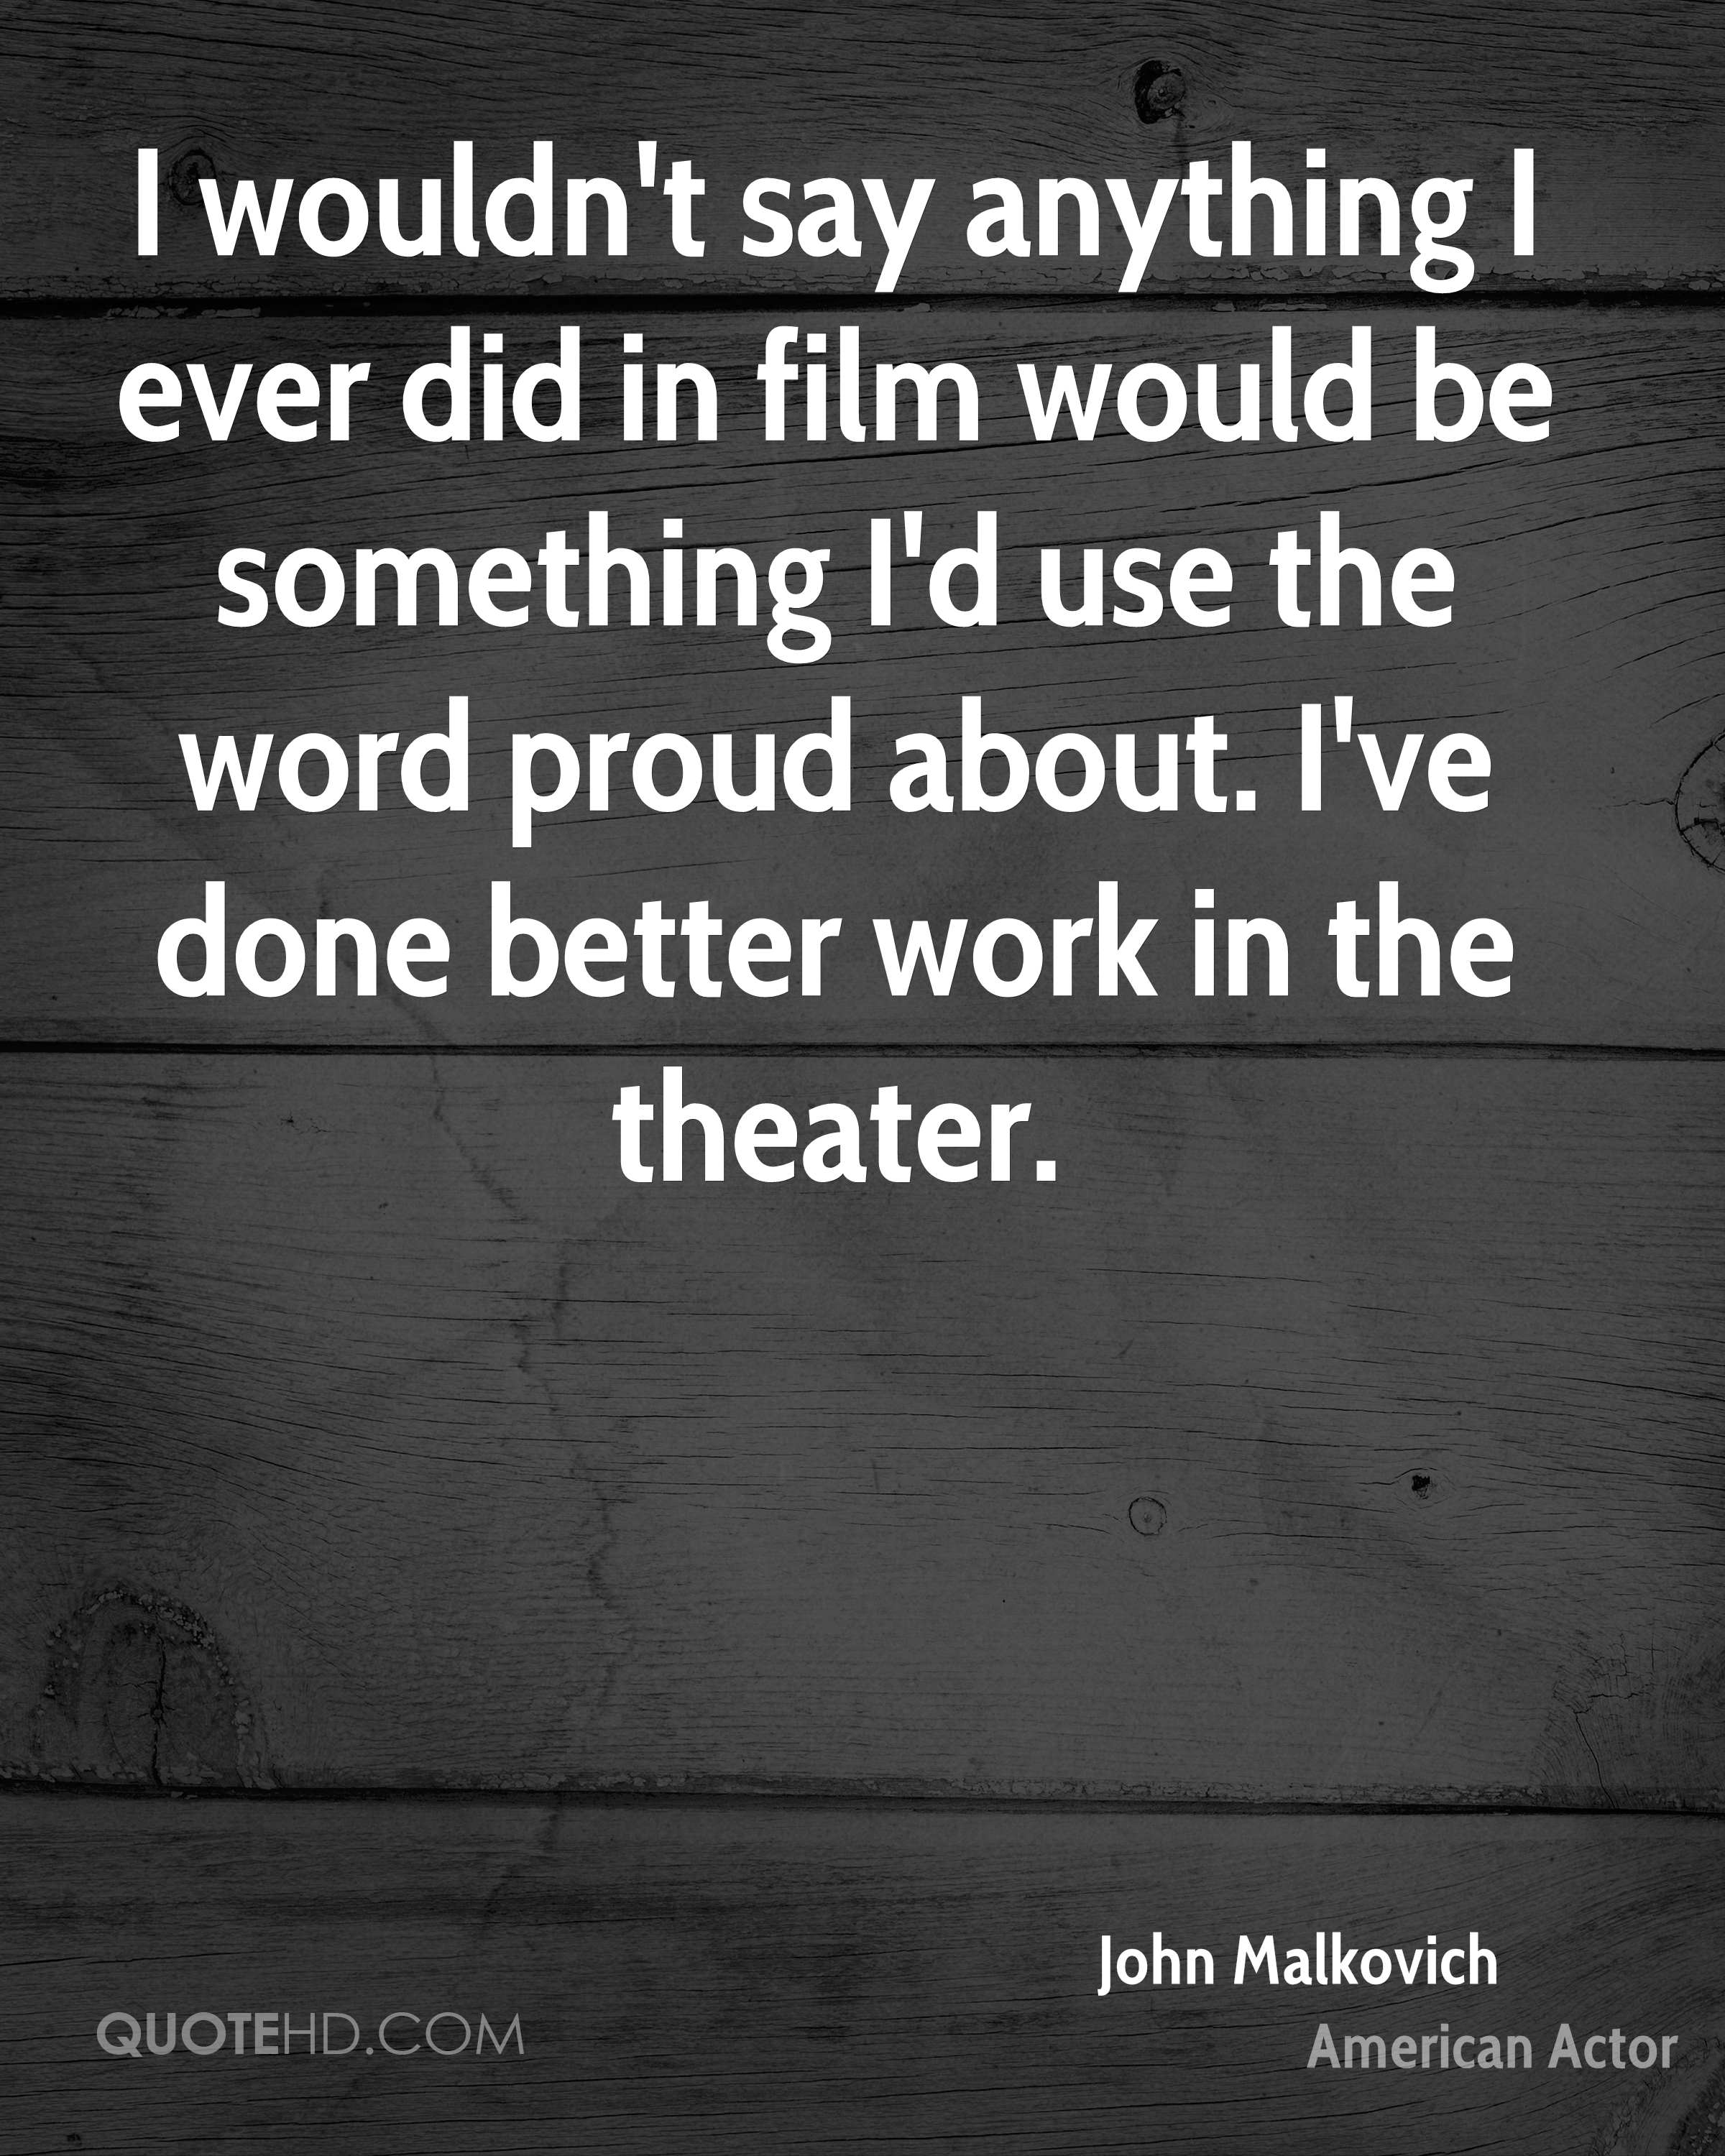 I wouldn't say anything I ever did in film would be something I'd use the word proud about. I've done better work in the theater.